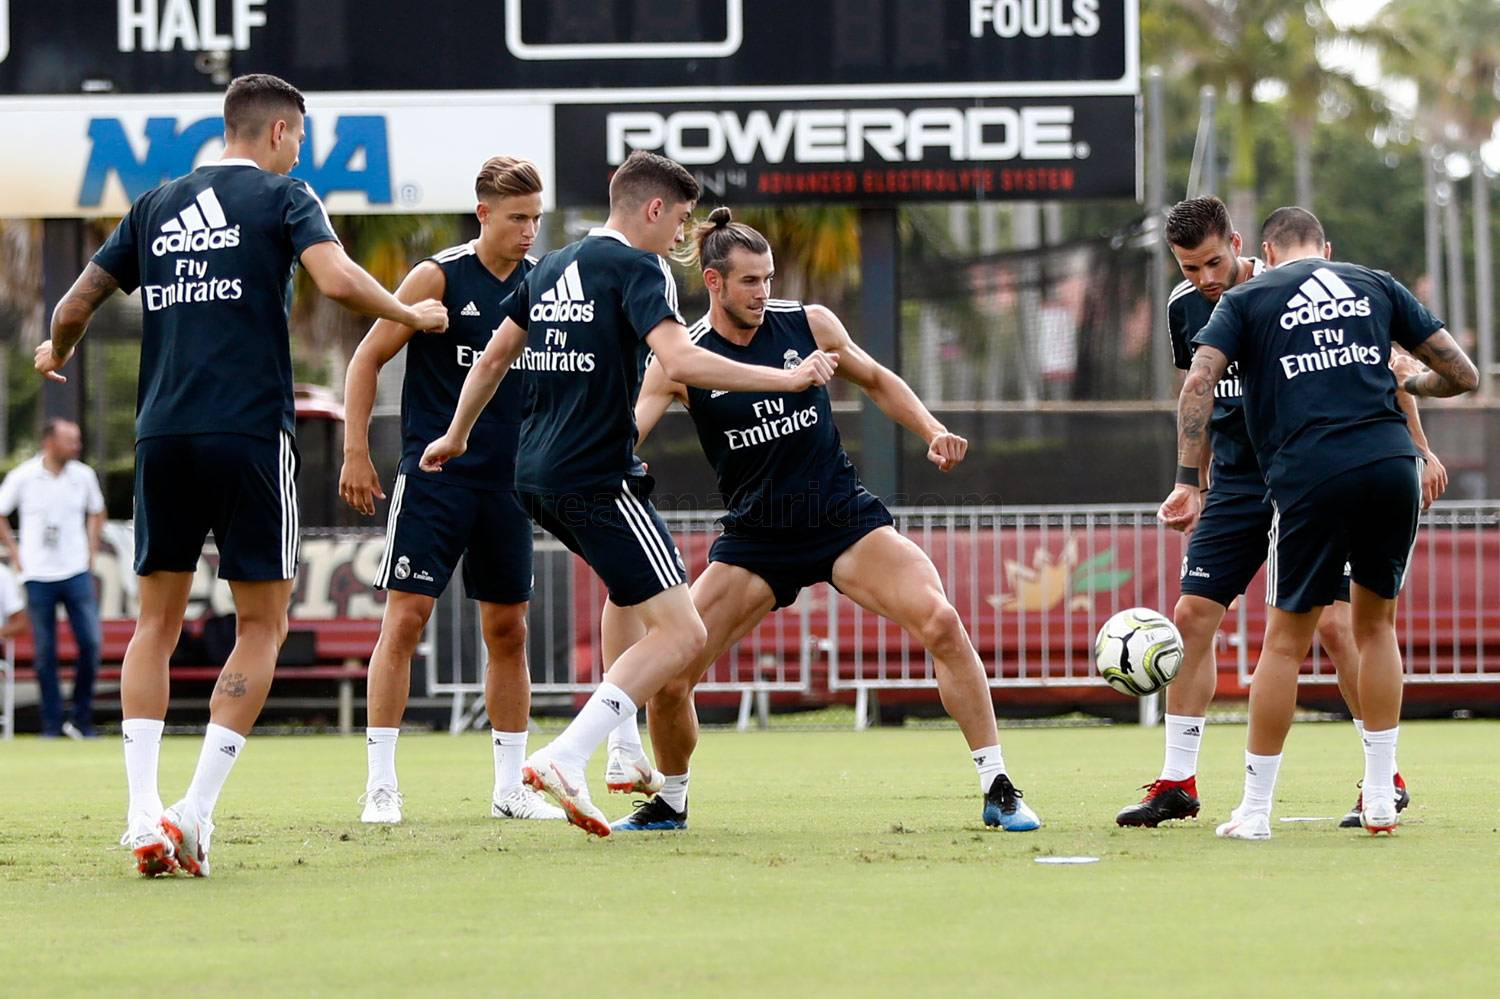 Real Madrid - Entrenamiento del Real Madrid en la Universidad de Barry - 02-08-2018